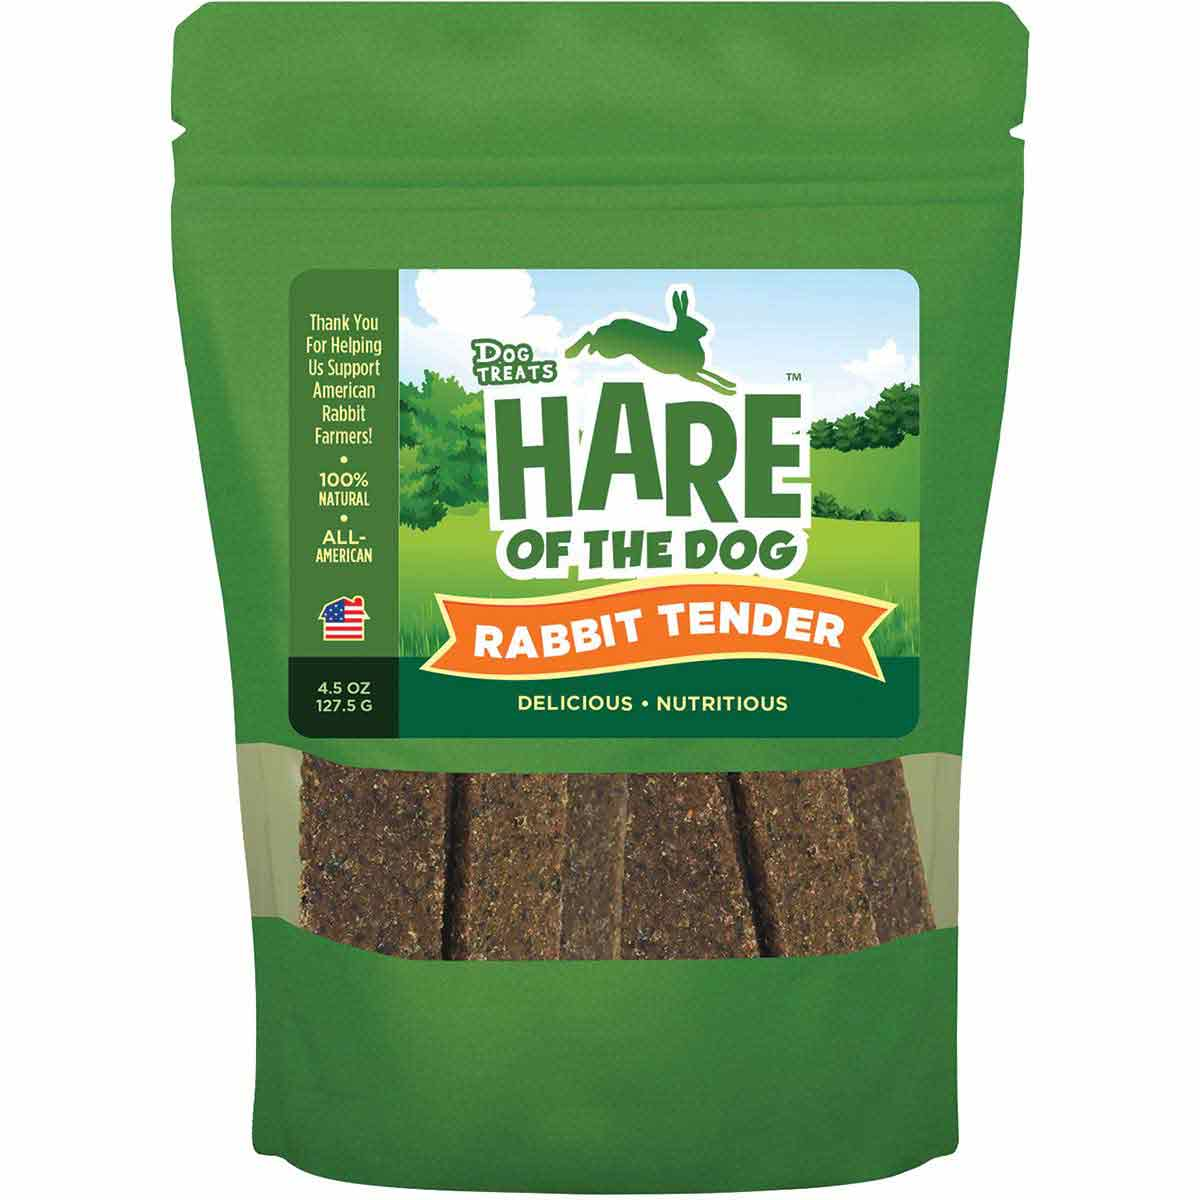 Hare of the Dog Rabbit Tender with All-American Rabbit Dog Treats